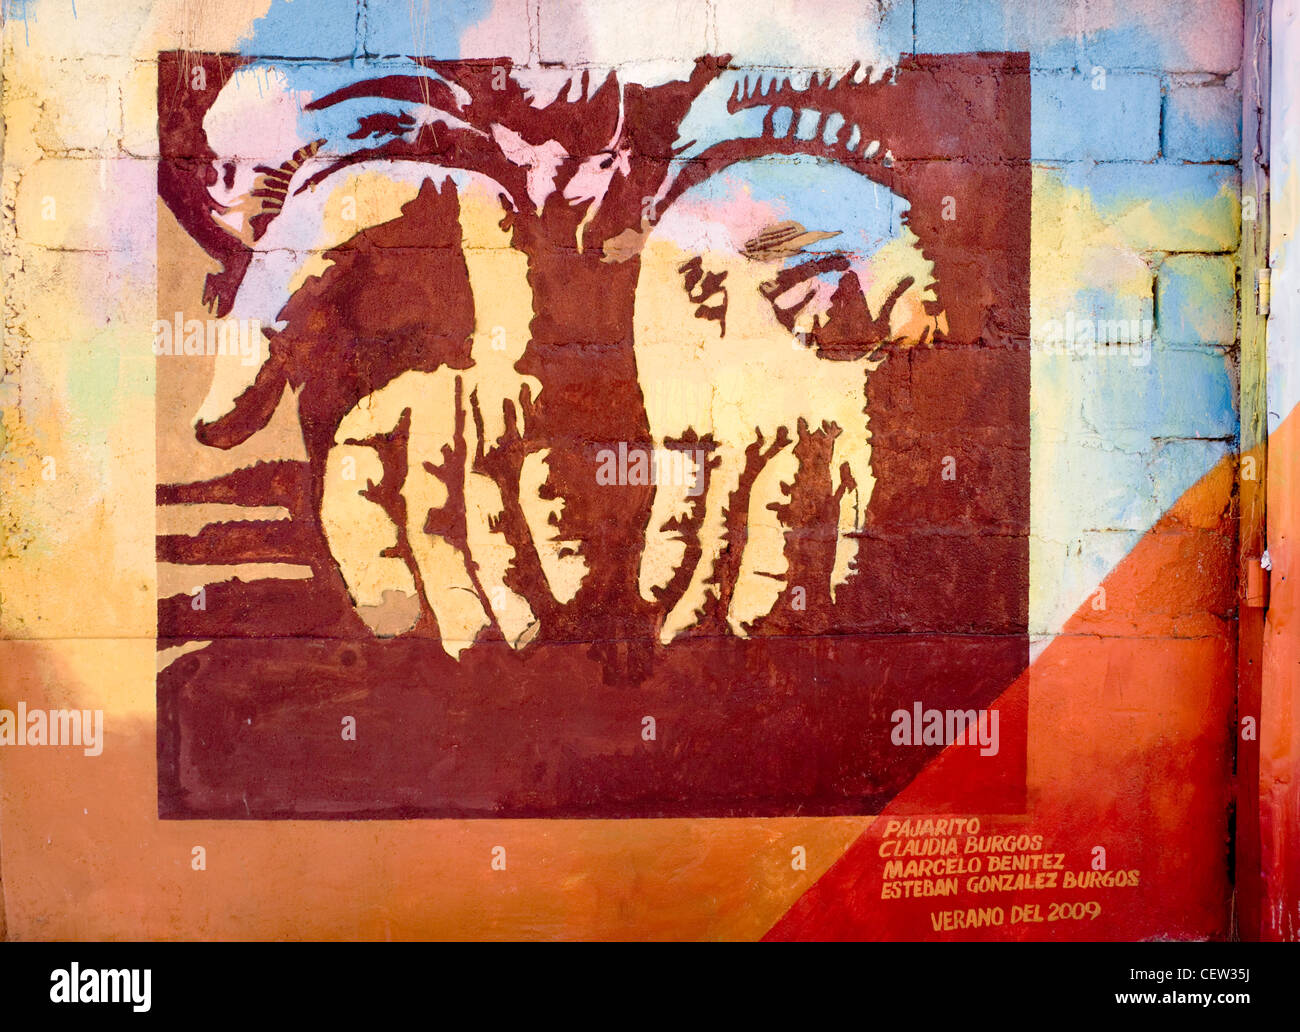 ValparaIso, Chile. South America. Mural. Cerro Bellavista. (Editorial Usage Only) - Stock Image